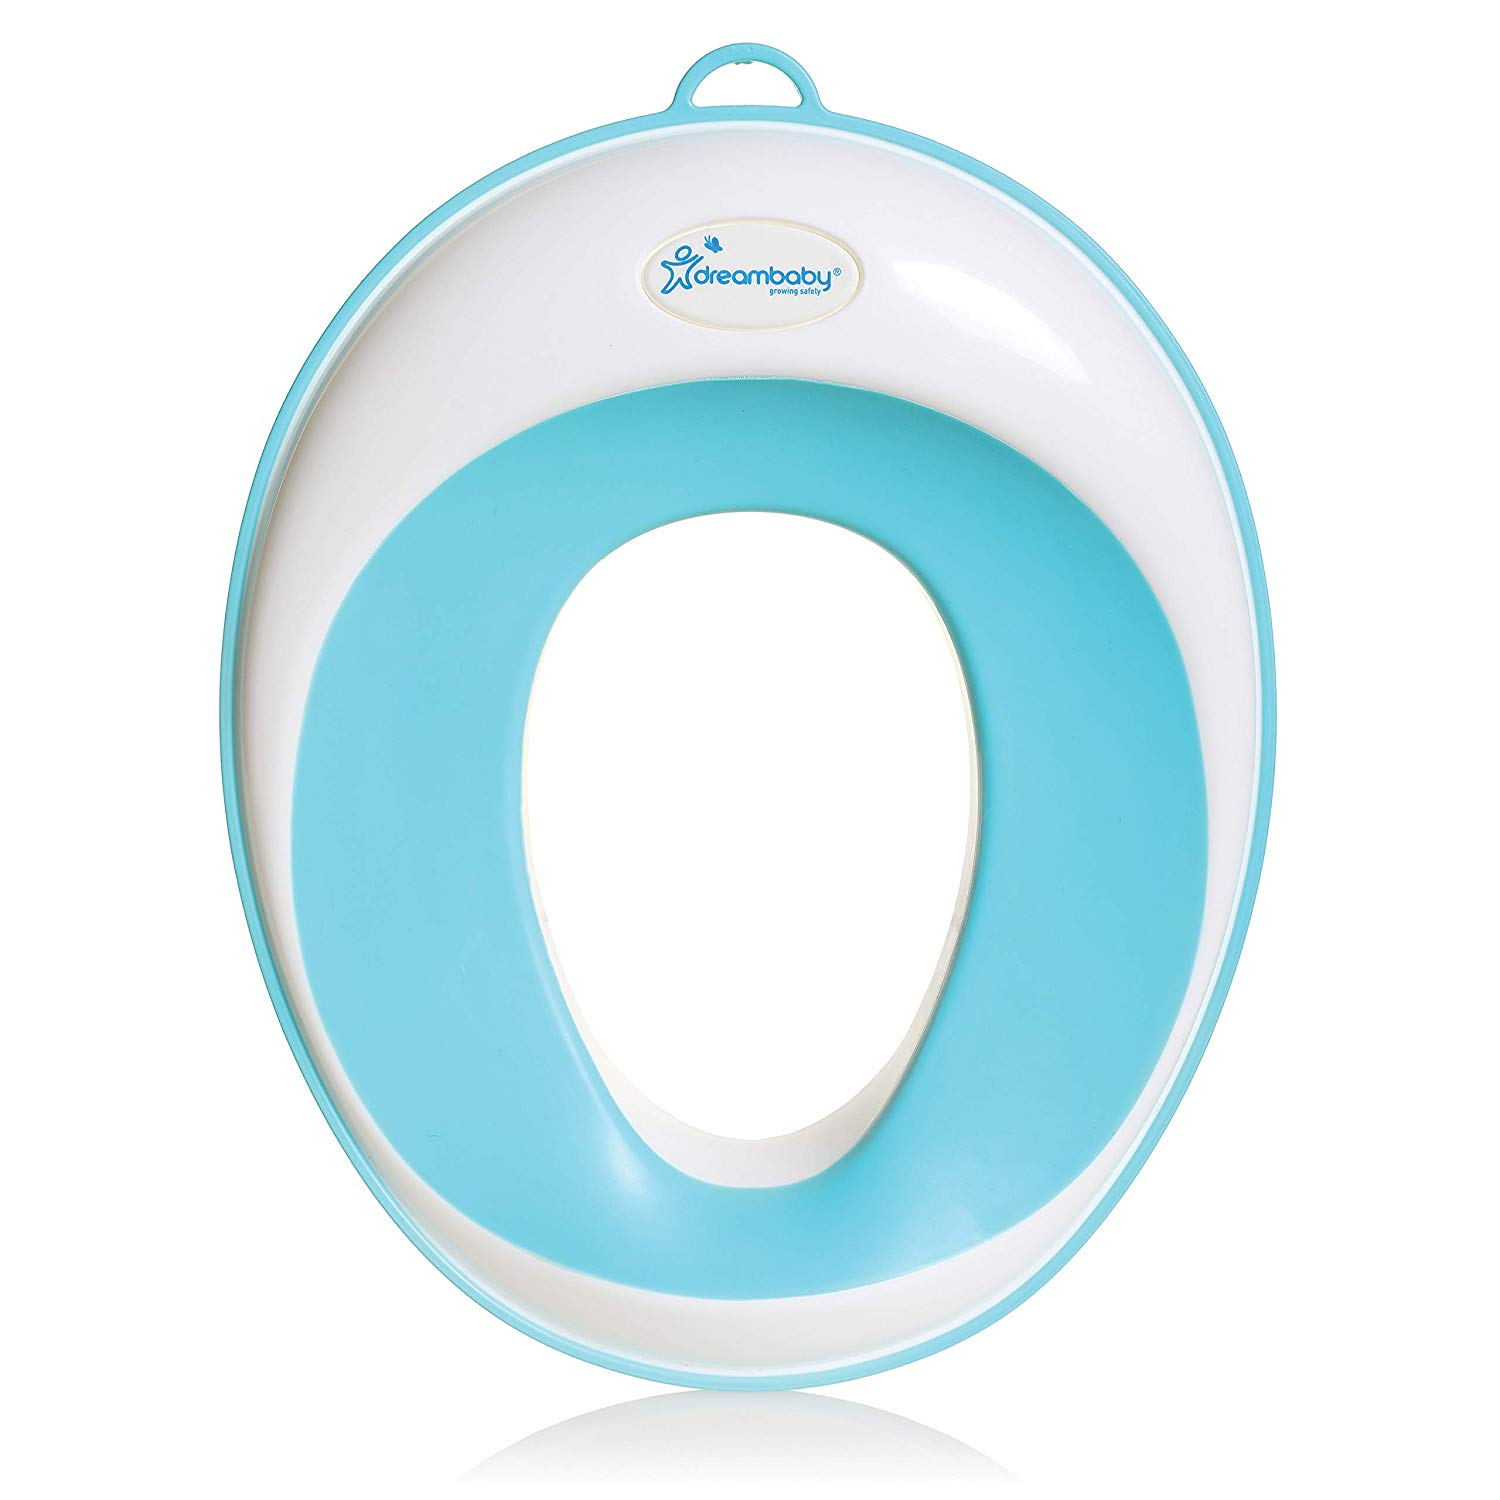 EZY- Potty Training Toilet Seat Topper, Non-Slip and Great for Travel, Soft touch seat provides maximum comfort to help your child feel at ease By Dreambaby